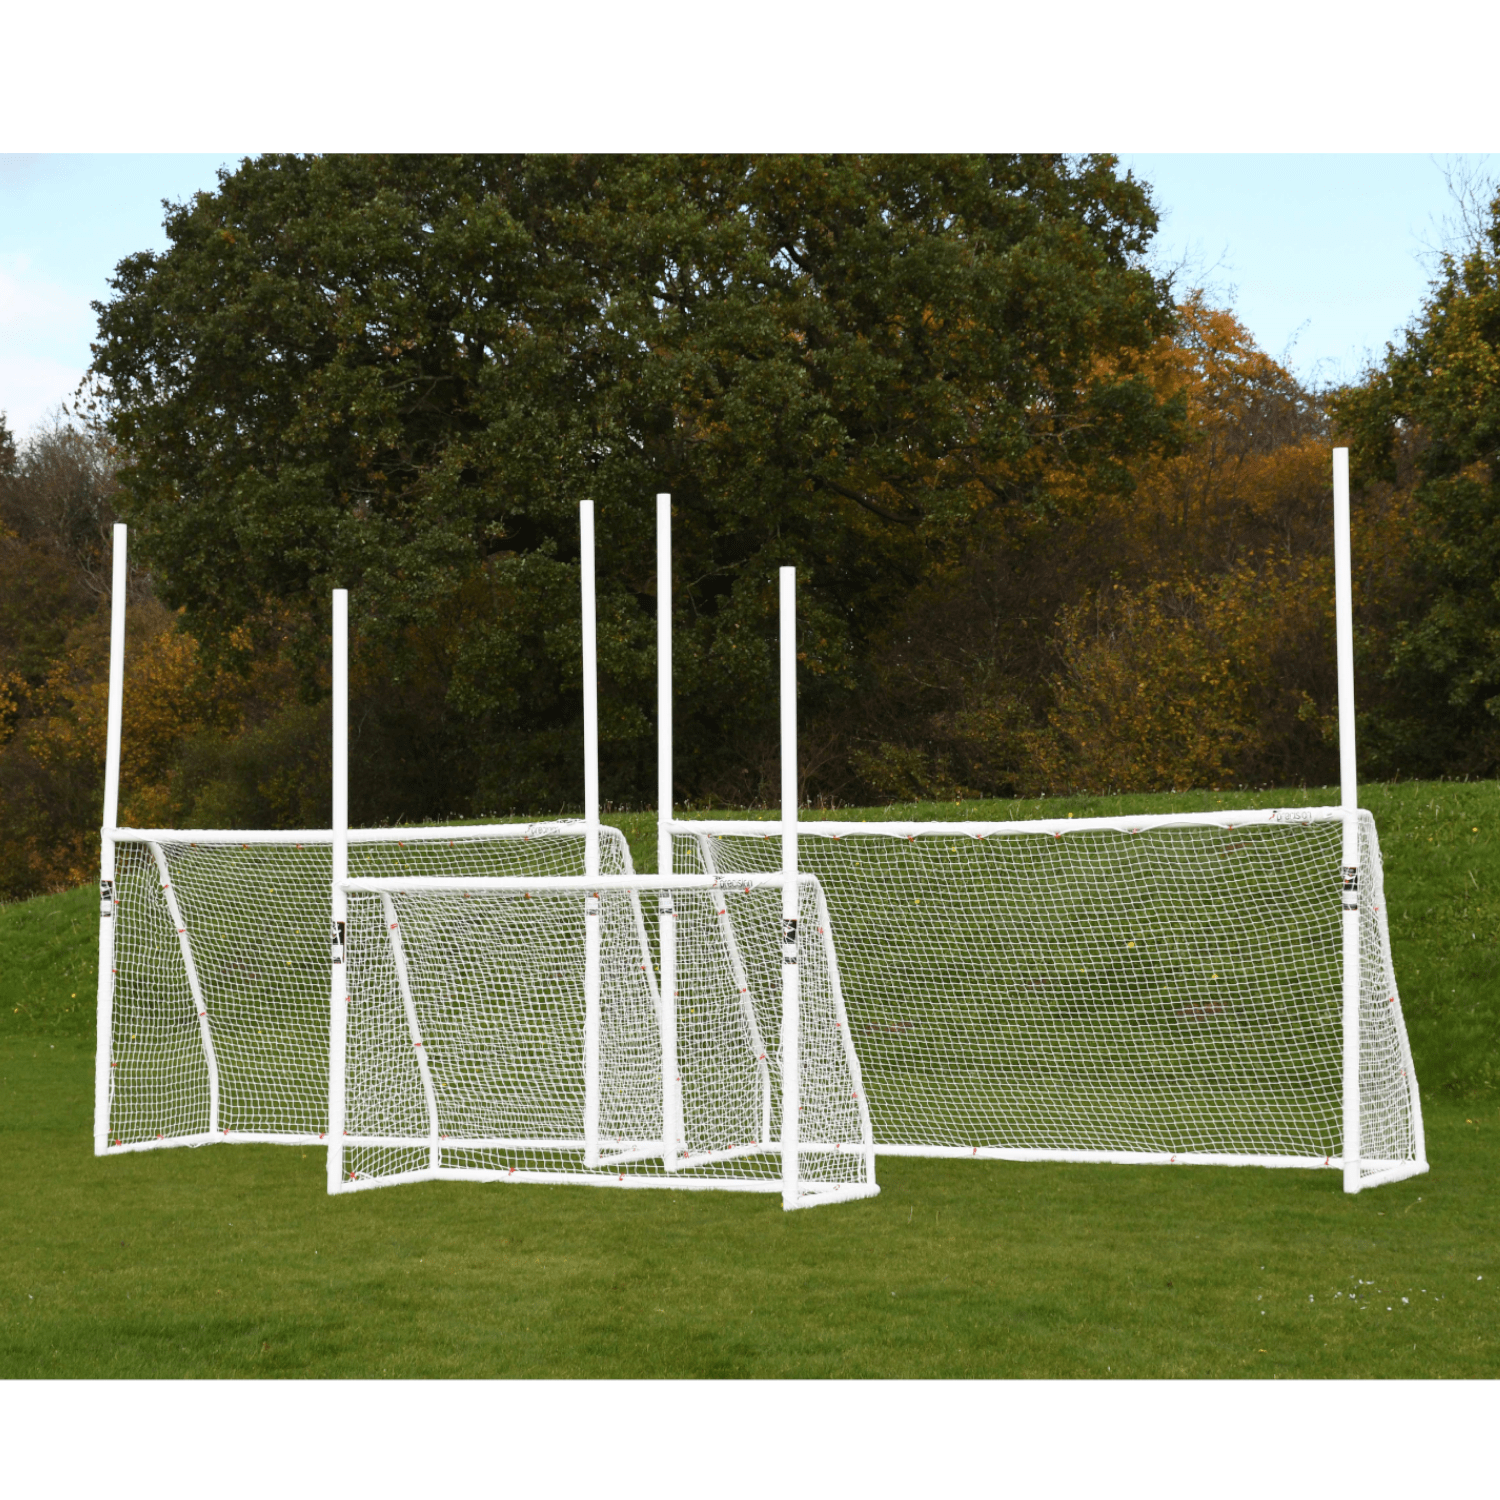 Precision GAA Match Goal Posts